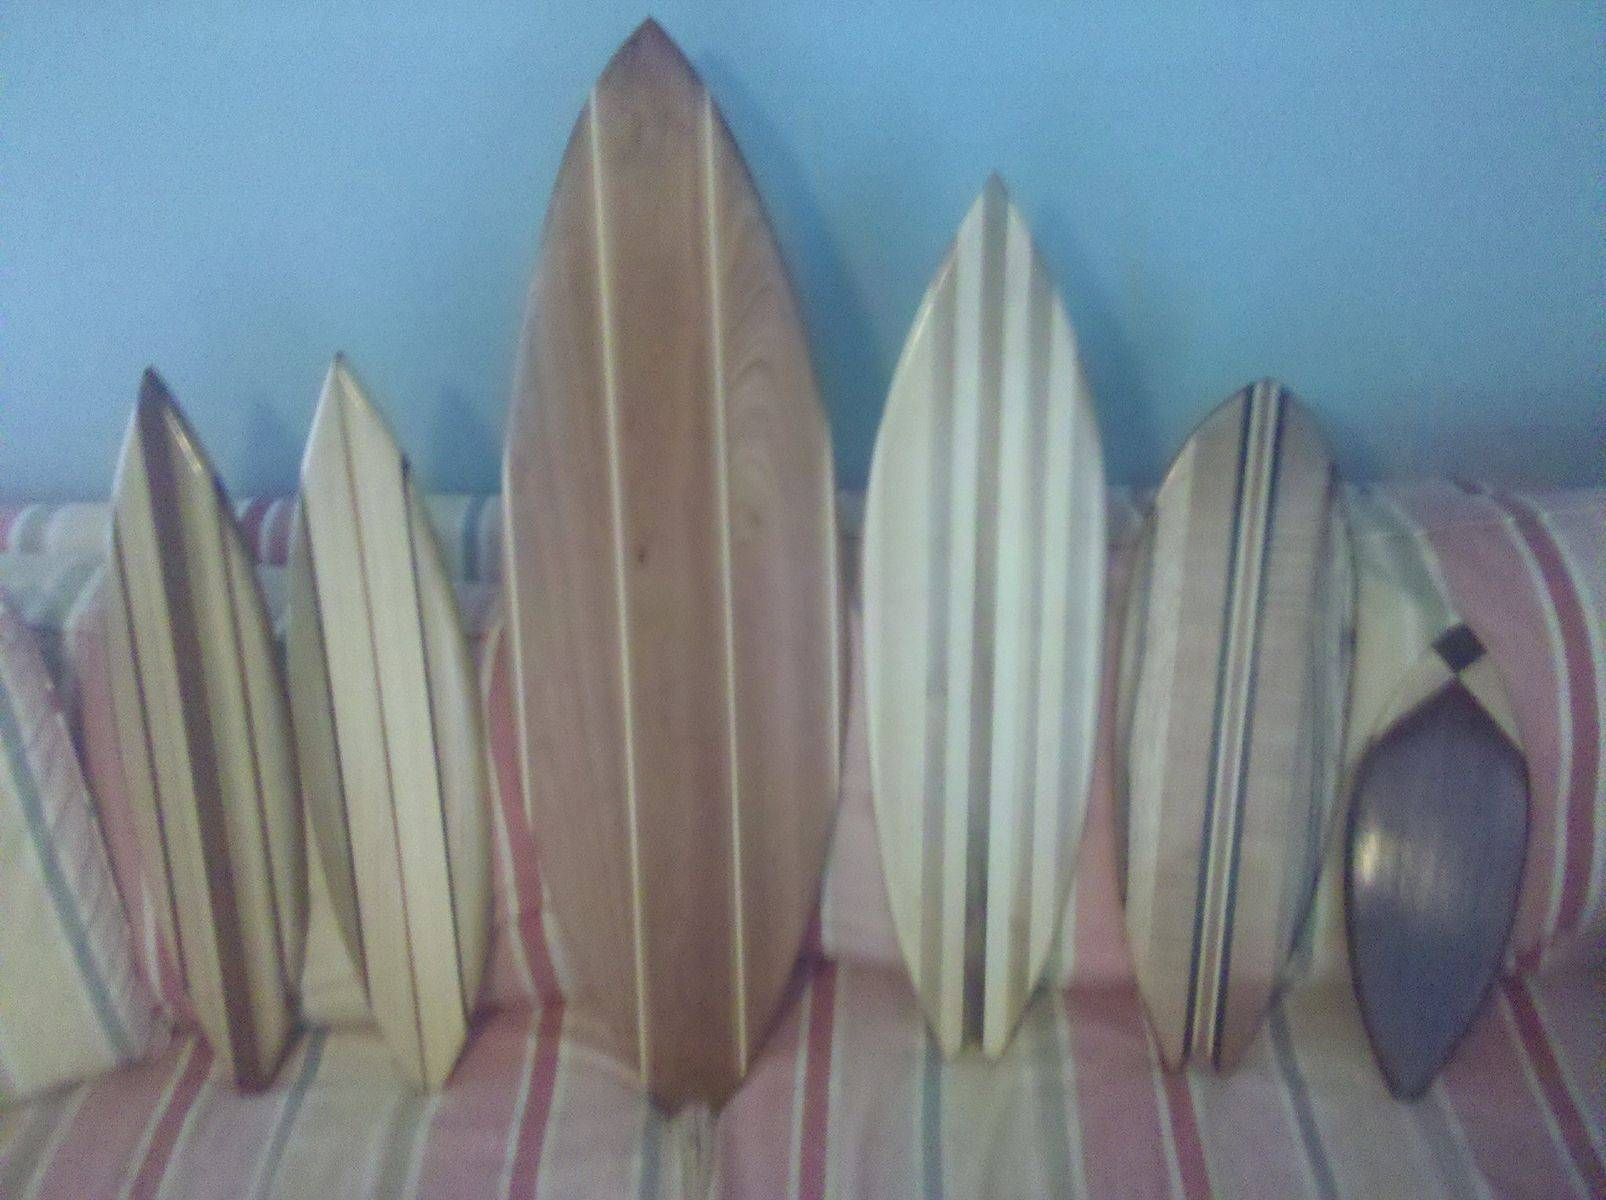 Custom Made Medium Surfboard Wall Artgood Surf Skateboards Intended For Most Current Decorative Surfboard Wall Art (View 20 of 25)